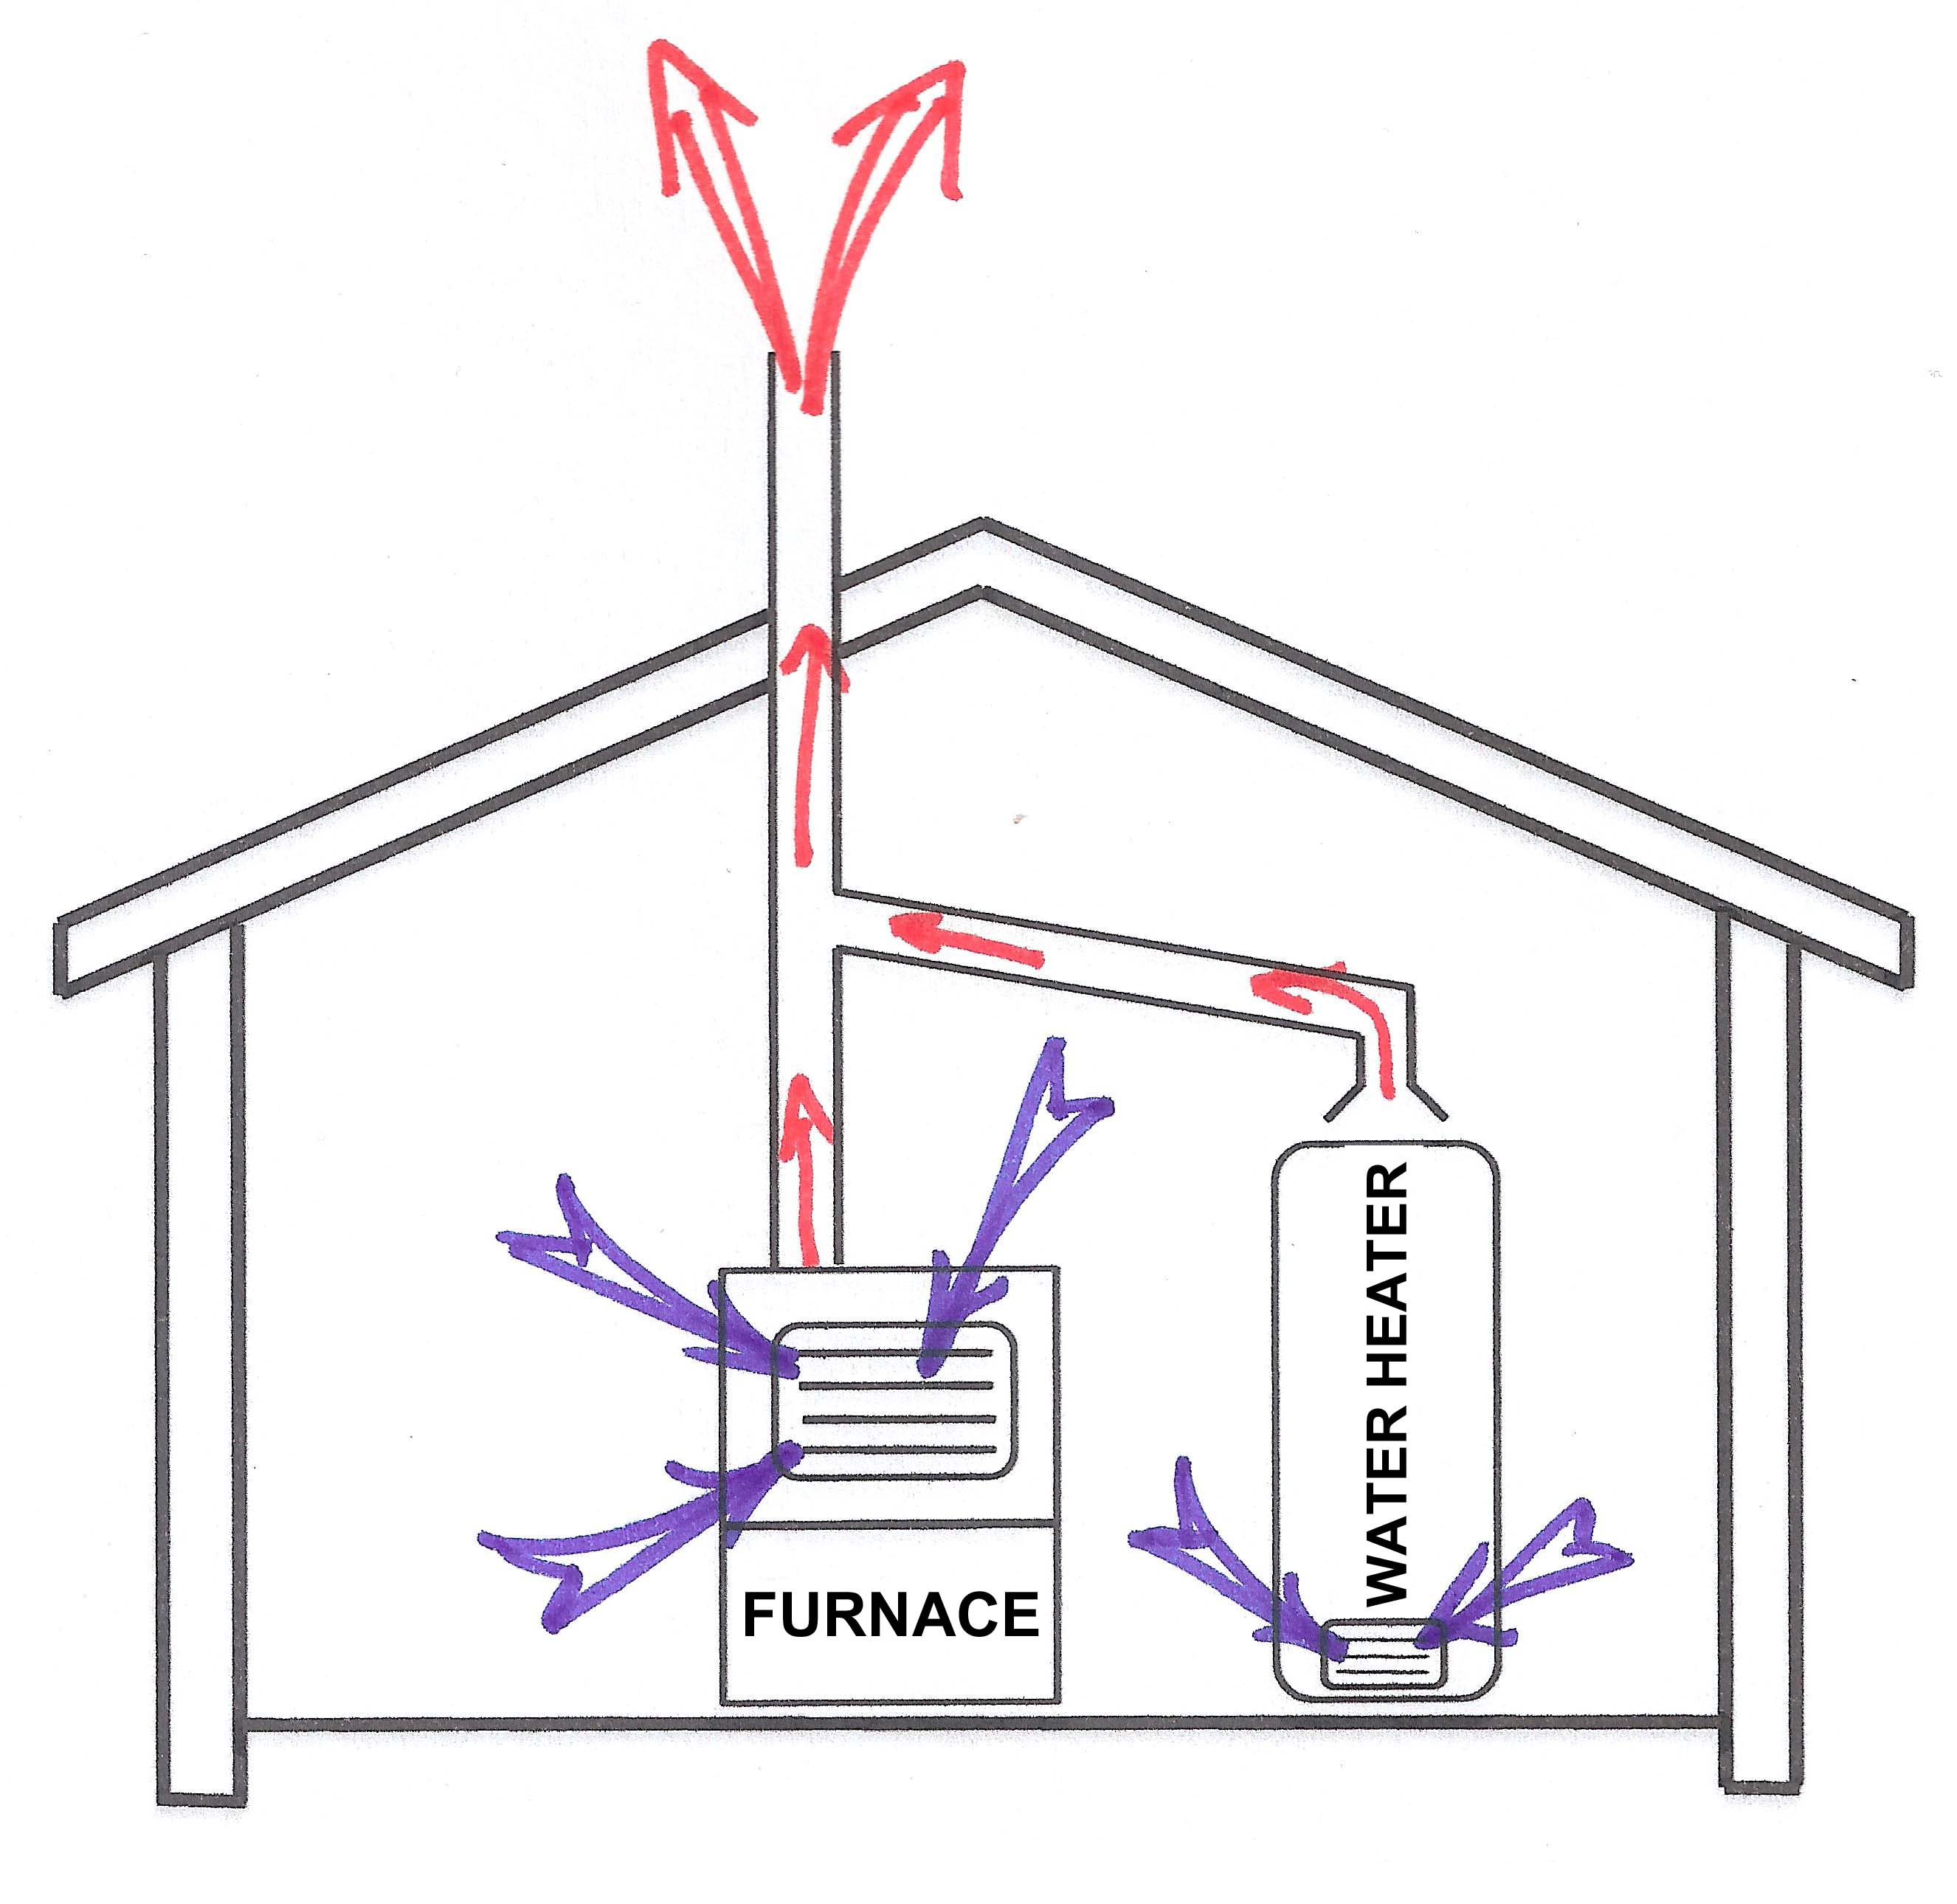 B venting a hot water heater - Comb Air Fig 1 B